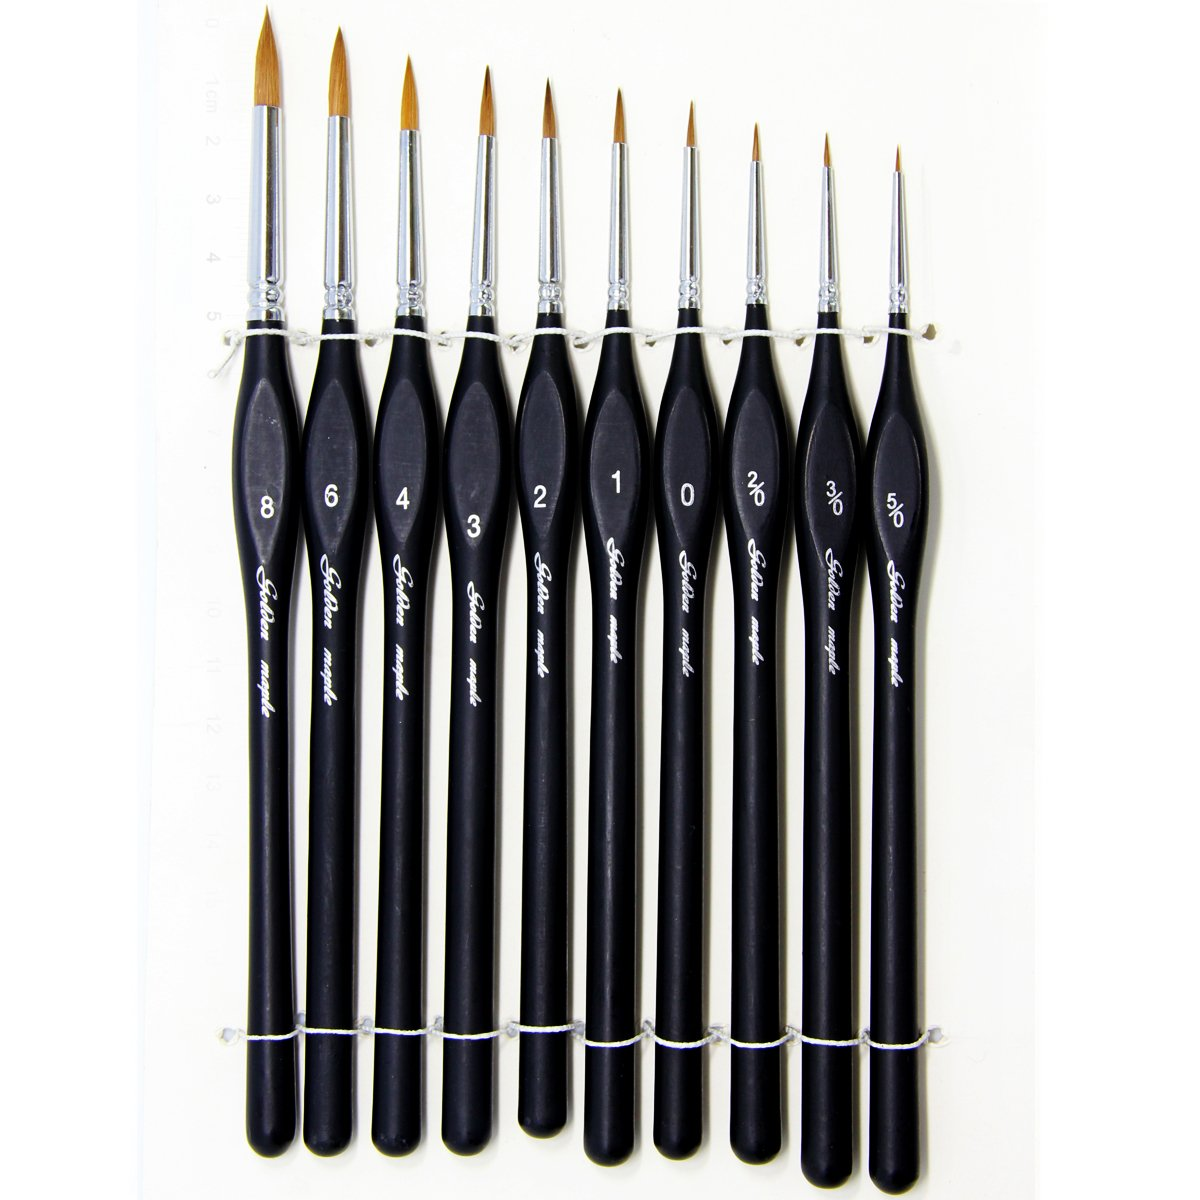 Detail Paint Brushes Set 10pcs Miniature Brushes for Fine Detailing & Art Painting - Acrylic, Watercolor,Oil,Models, Warhammer 40k. by golden maple